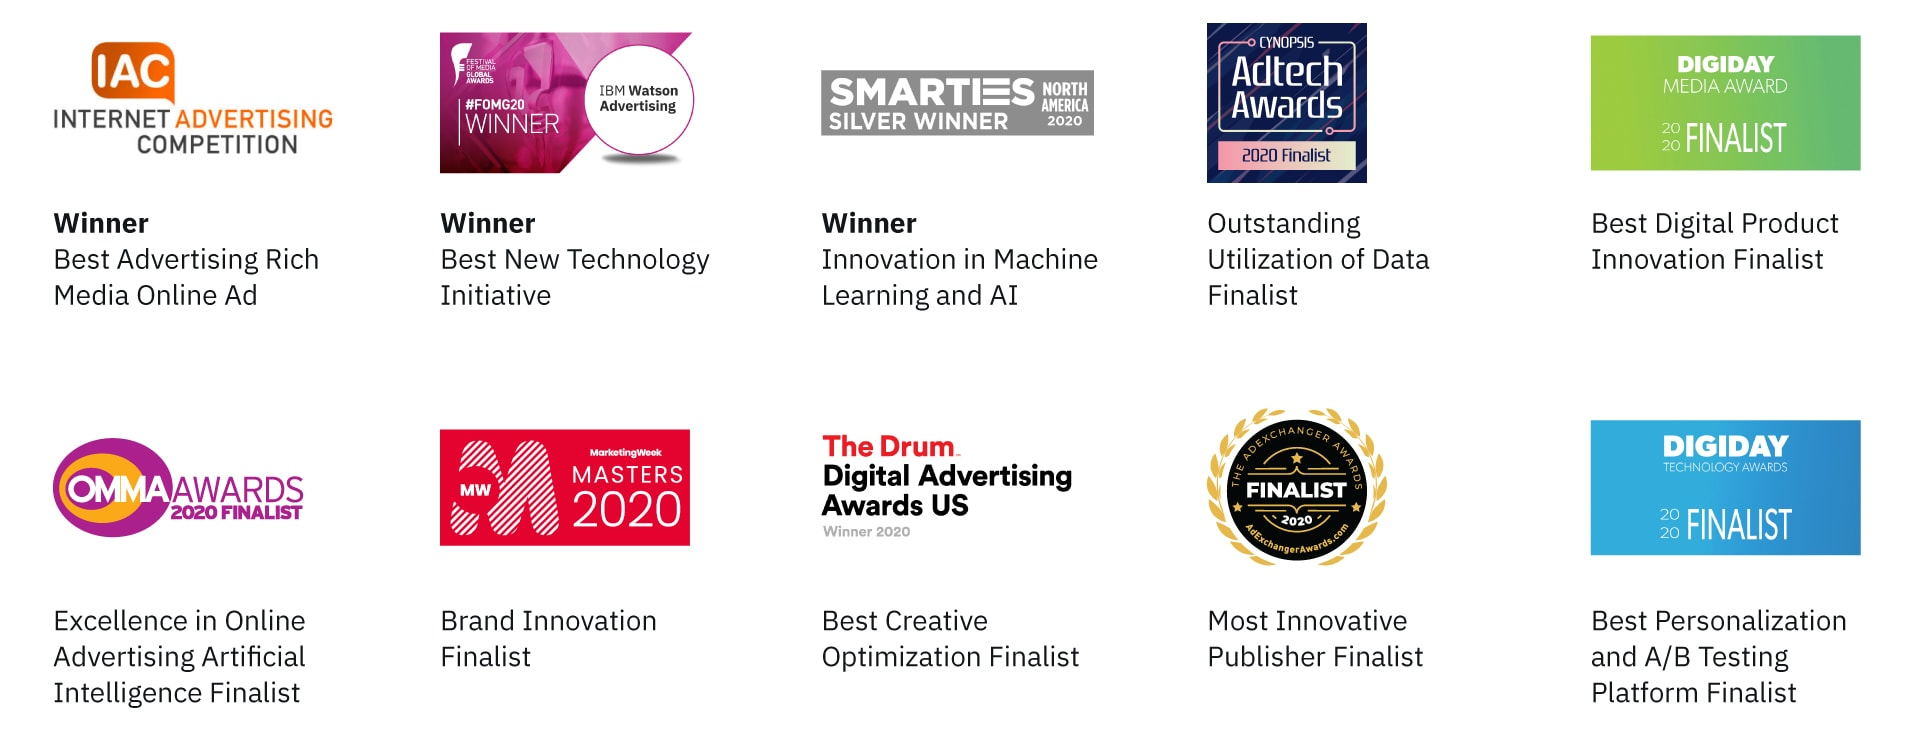 ibm watson advertising accelerator awards